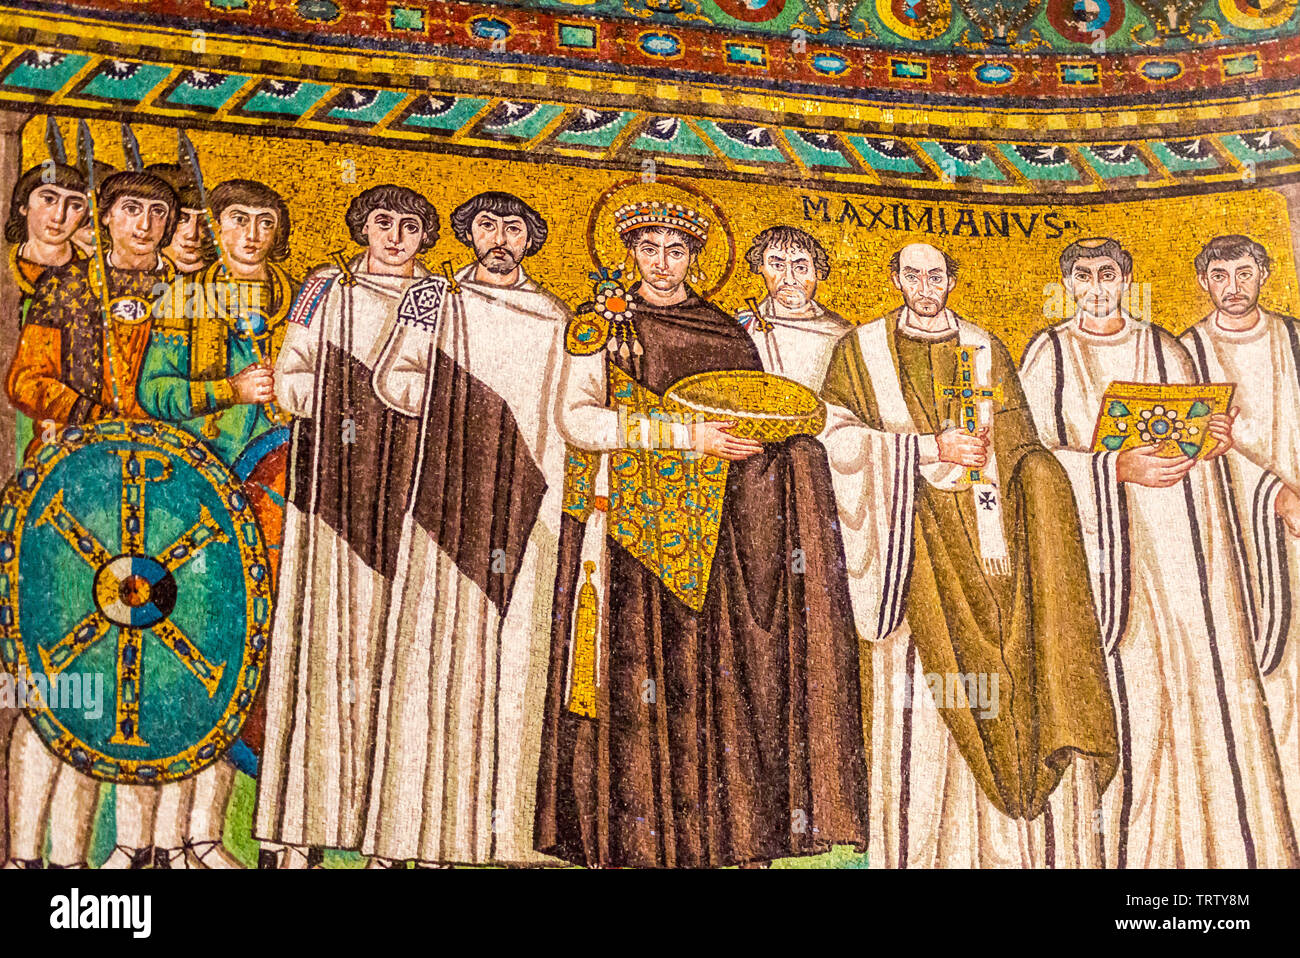 mosaic-of-byzantine-emperor-justinian-bishop-maximian-general-belisarius-and-attendants-basilica-of-san-vitale-ad547-ravenna-emilia-romagna-italy-TRTY8M.jpg